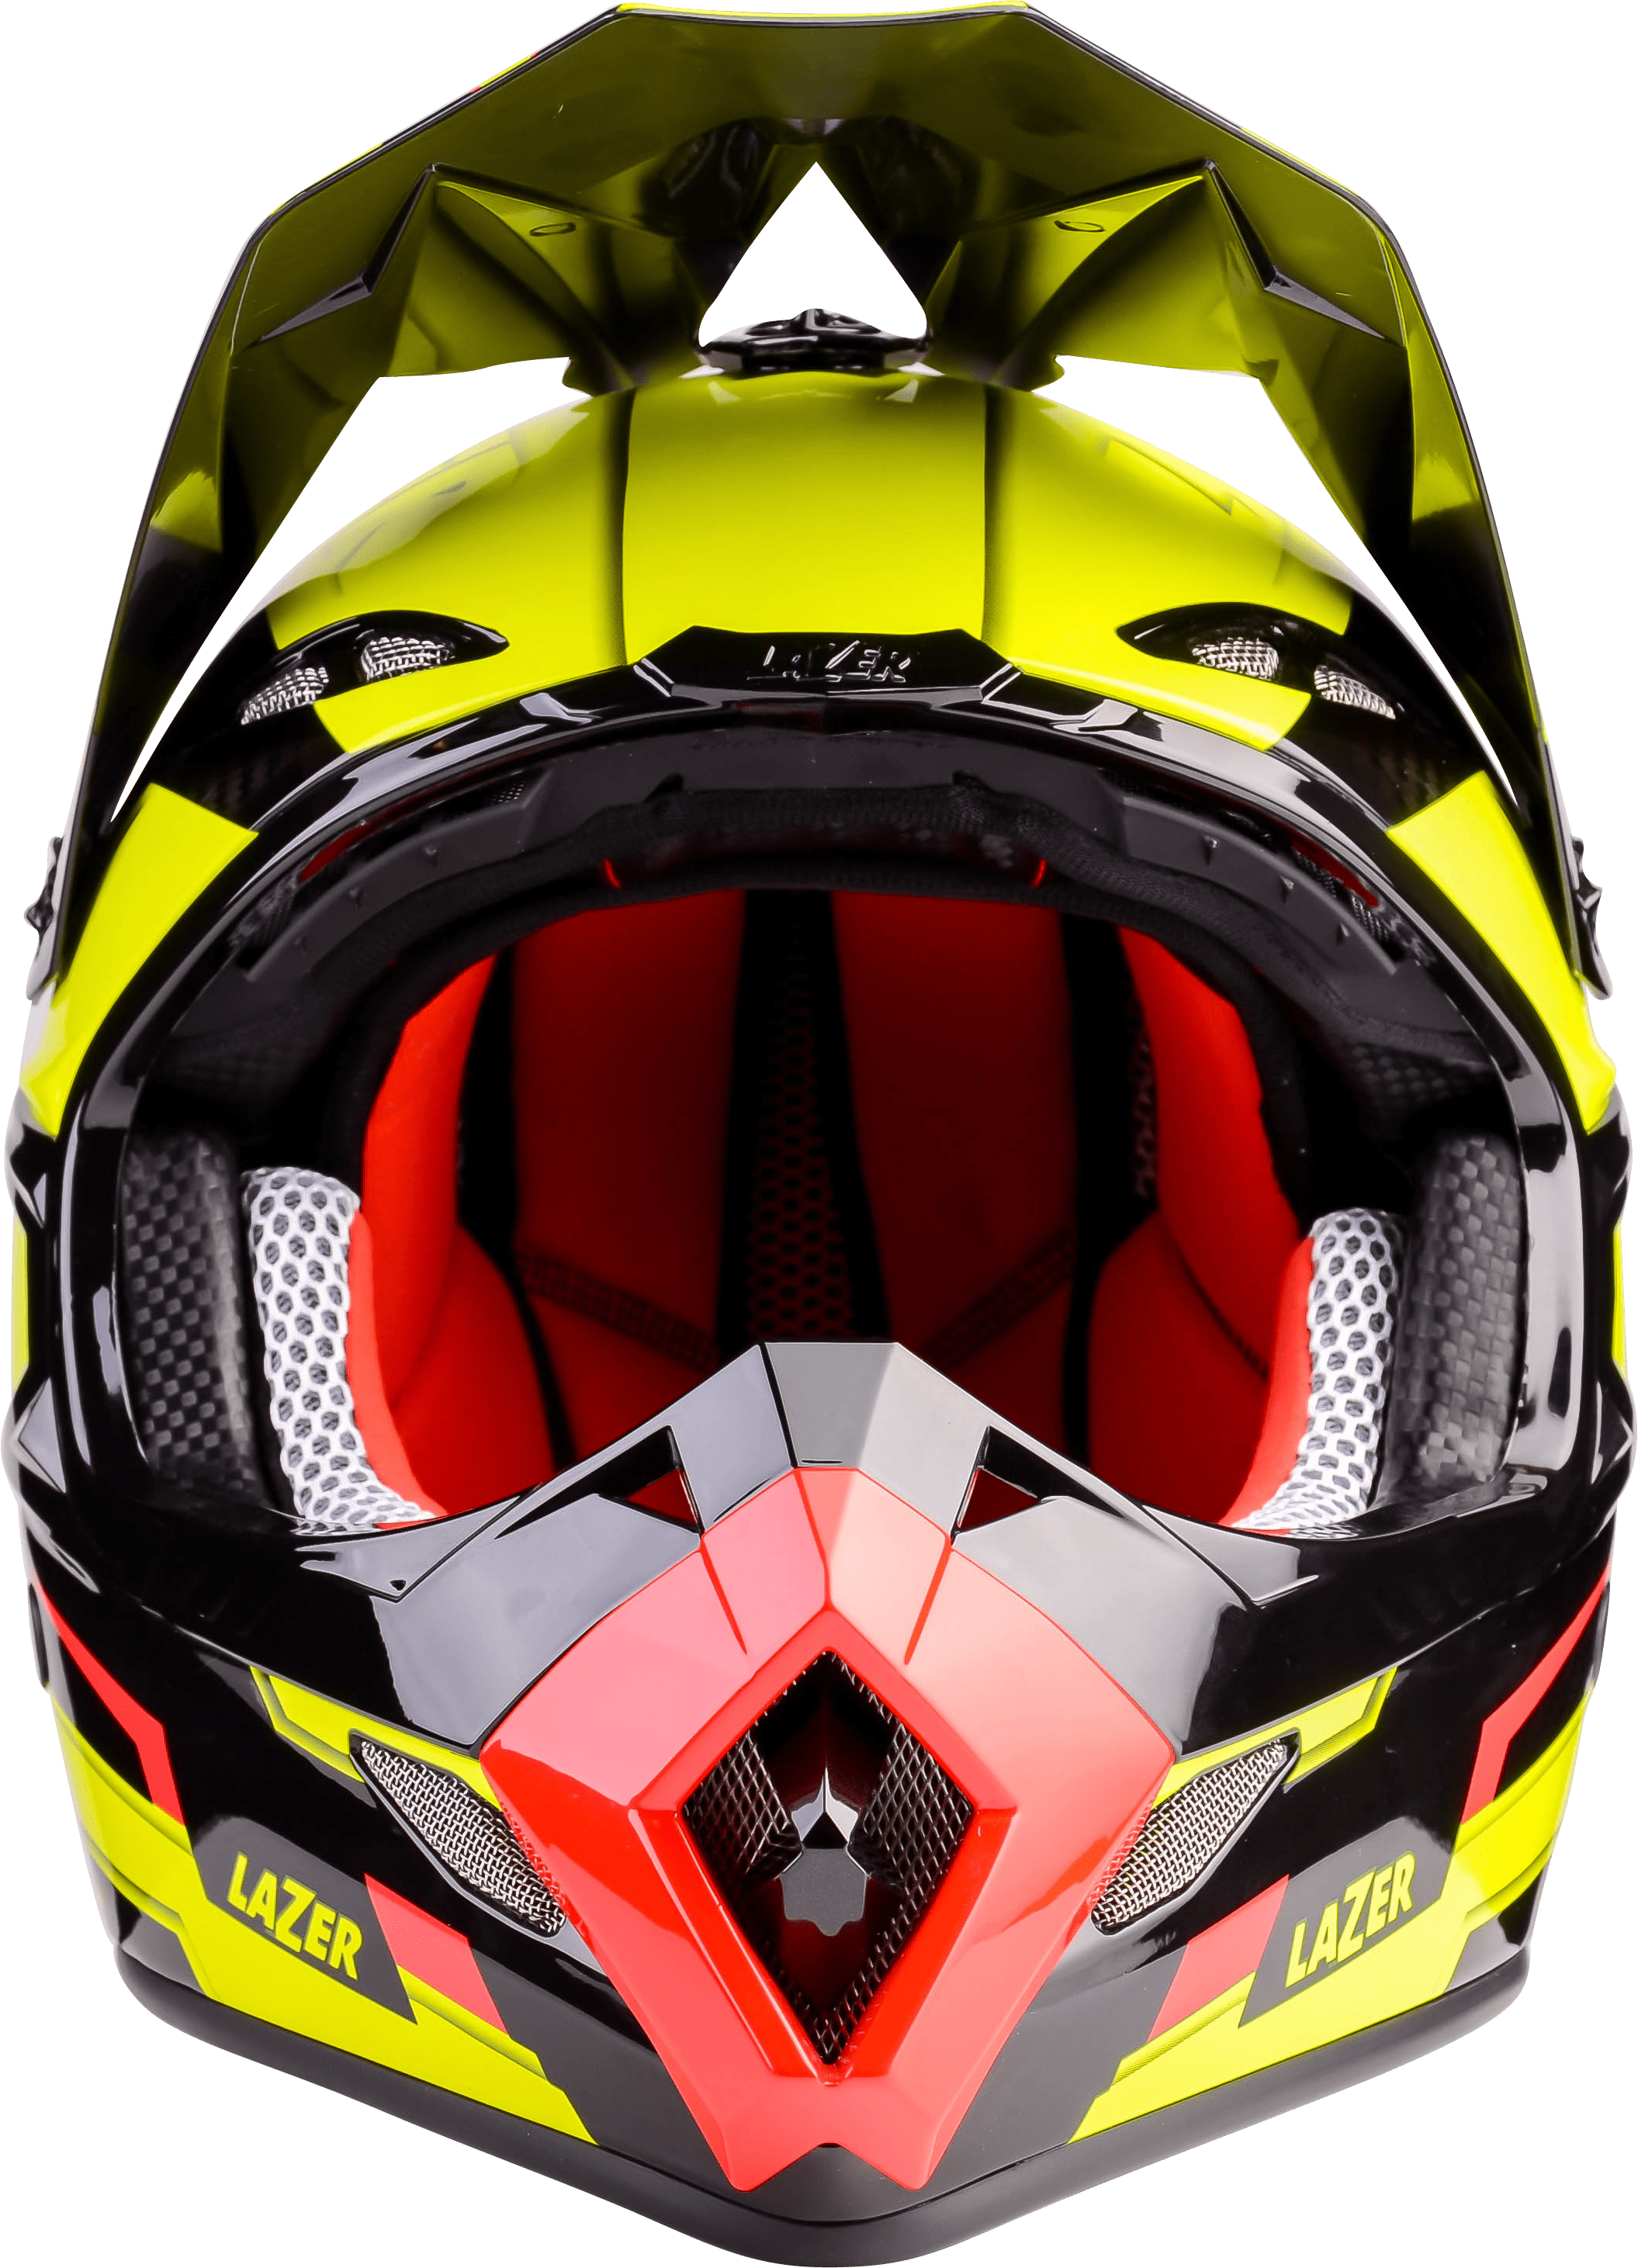 Motorcycle Helmet Lazer MX8 Geotech Pure Carbon Yellow Black Red Front - Motorcycle Helmet PNG